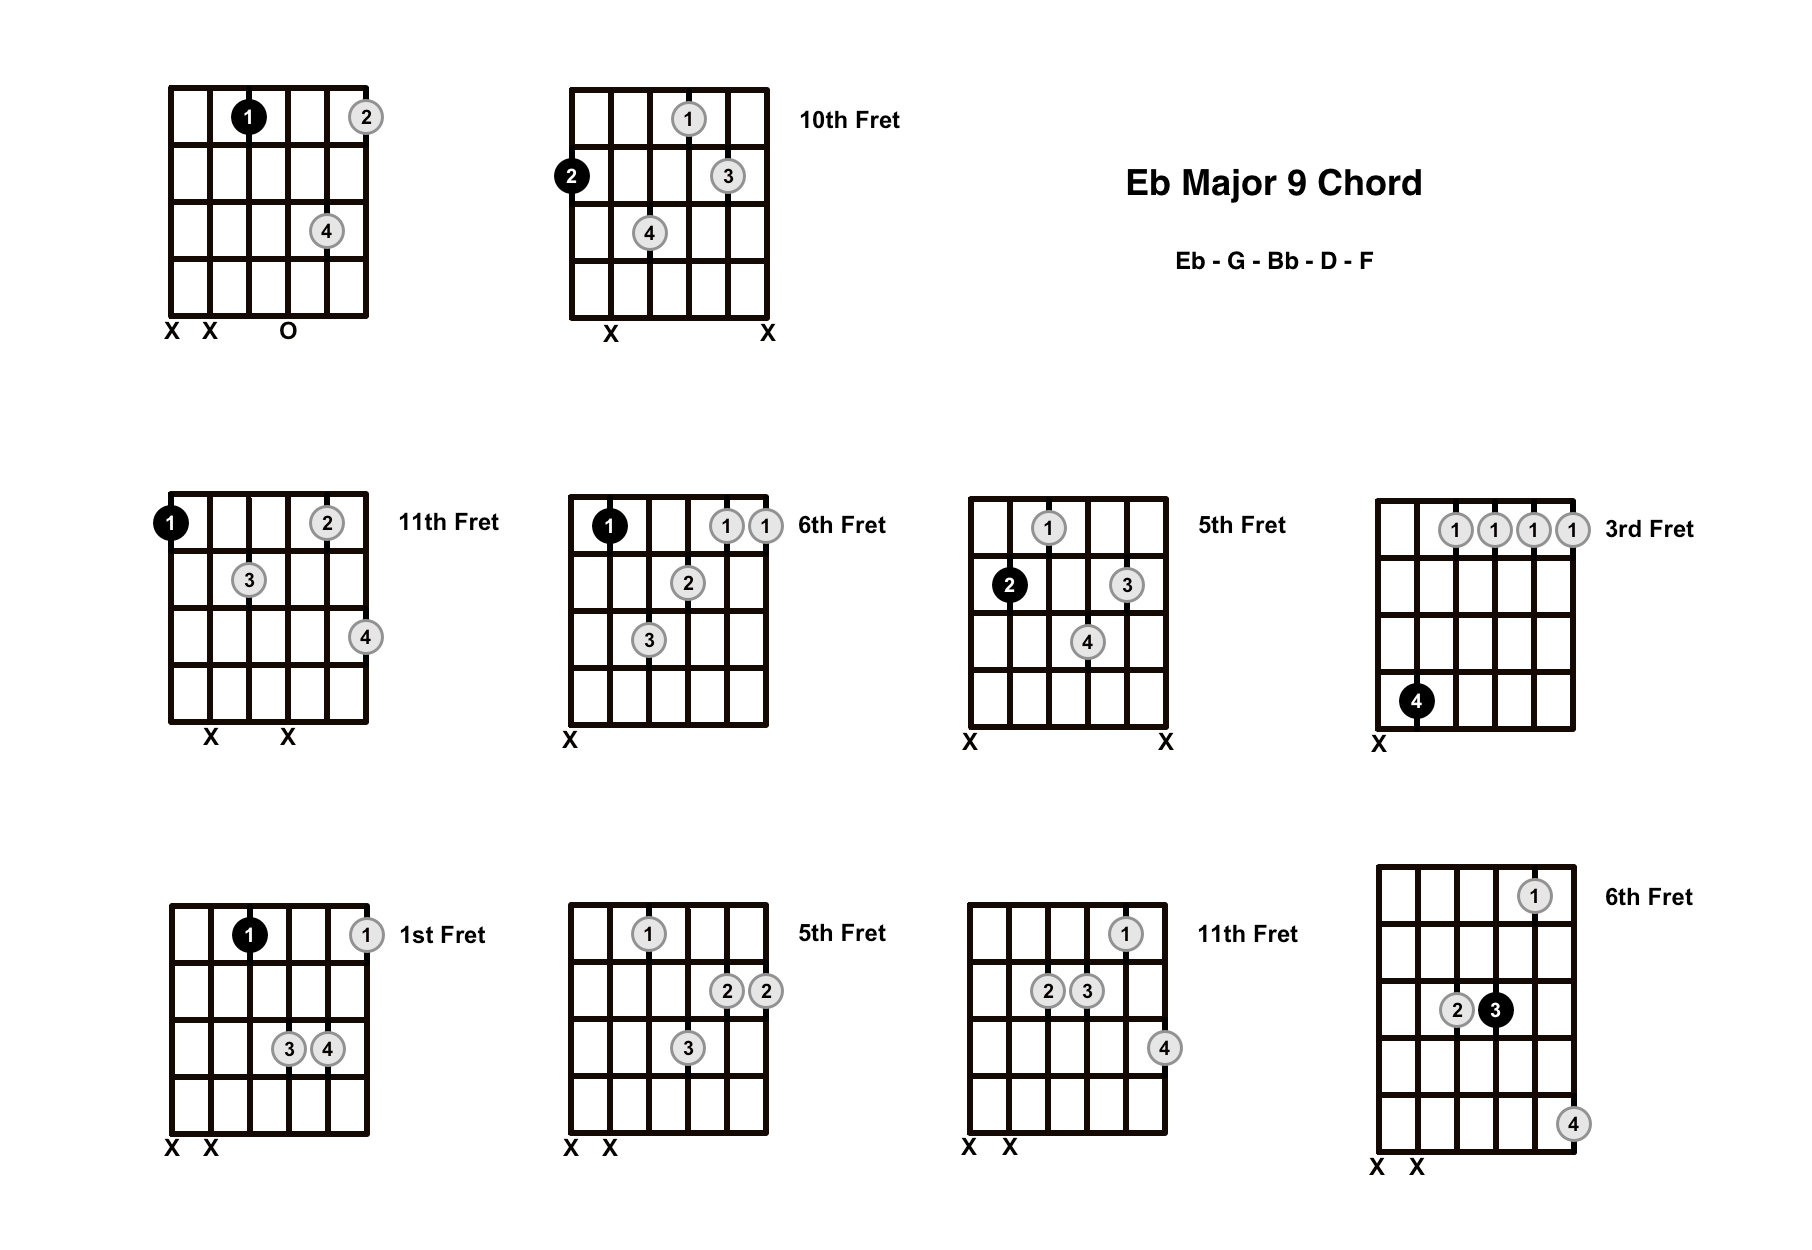 E Flat Major 9 Chord On The Guitar (Eb Maj 9) – Diagrams, Finger Positions and Theory